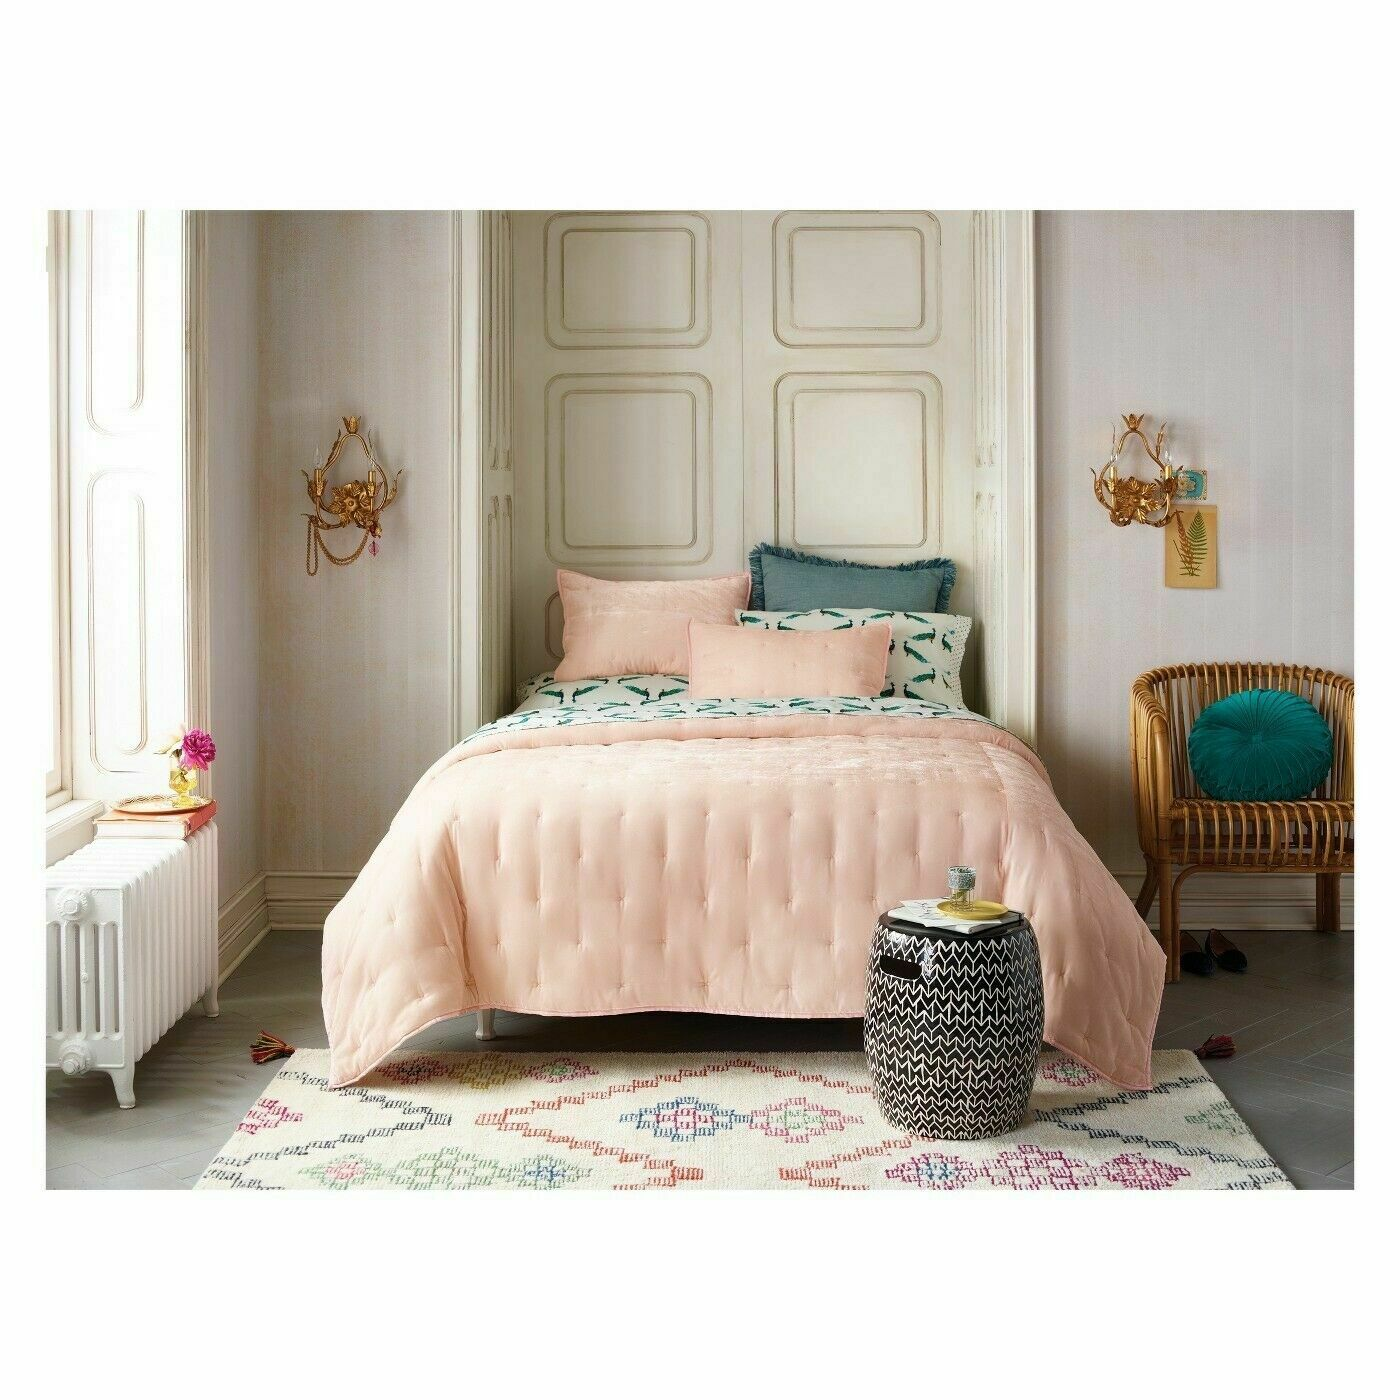 Opalhouse Pink Tufted Velvet Quilt   KING